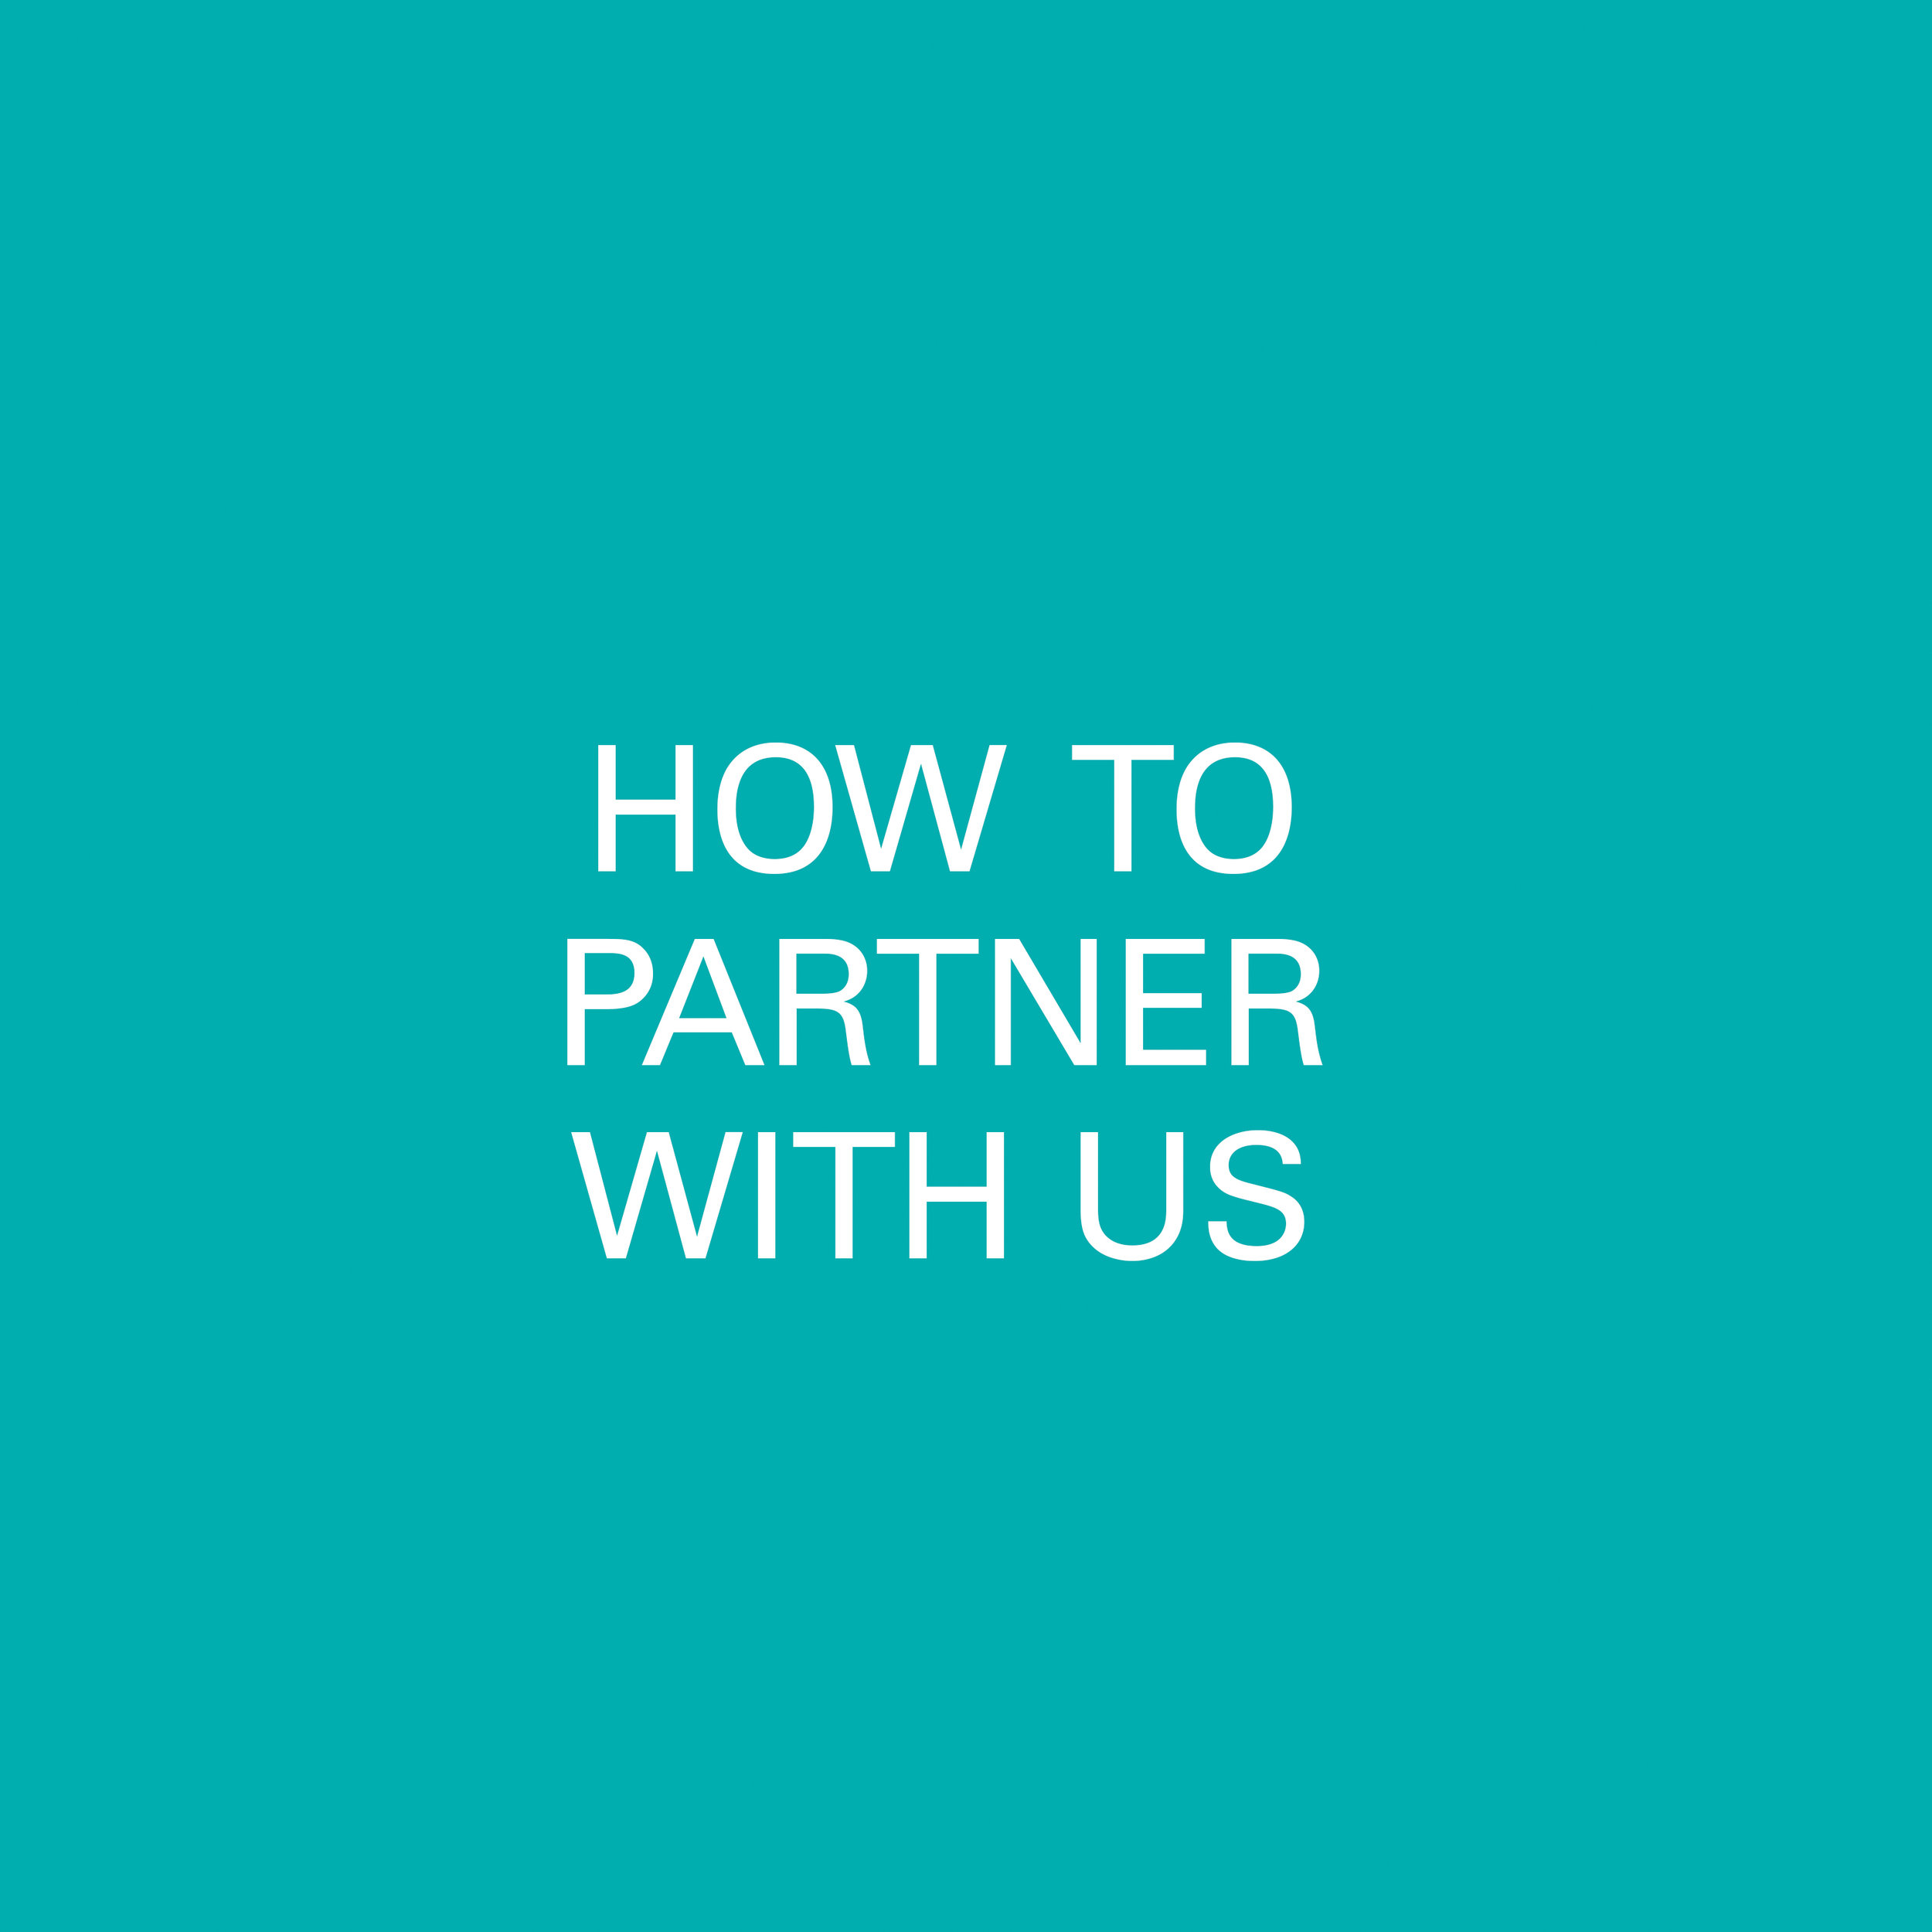 how to partner with us.jpg